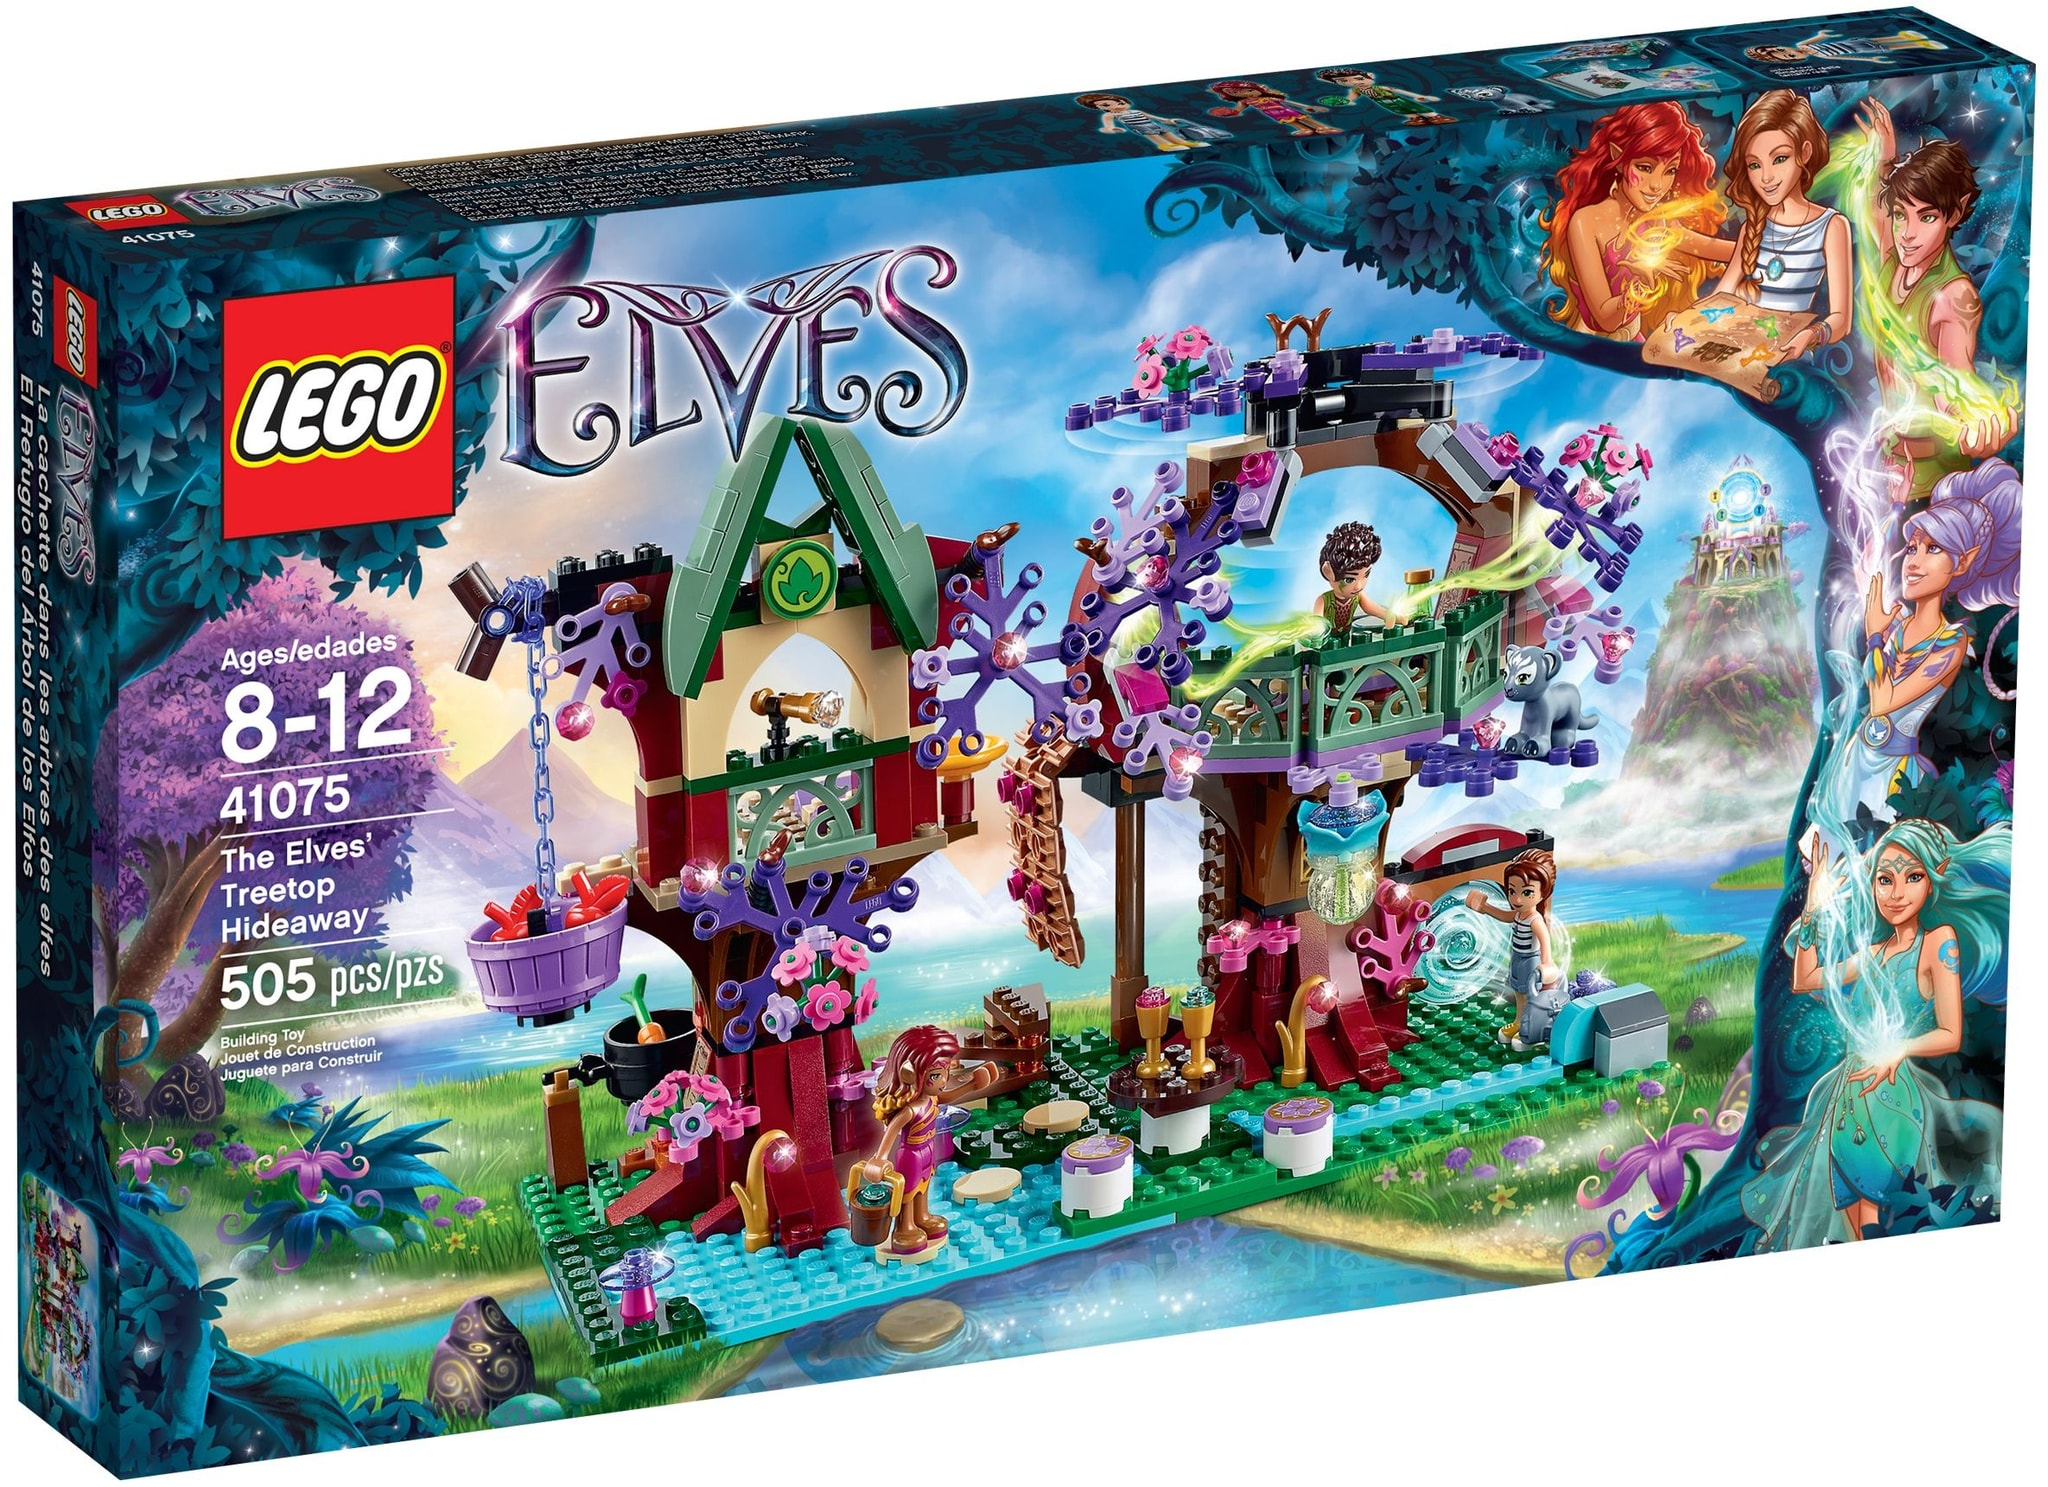 LEGO 41075 - Elves - The Elves' Treetop Hideaway